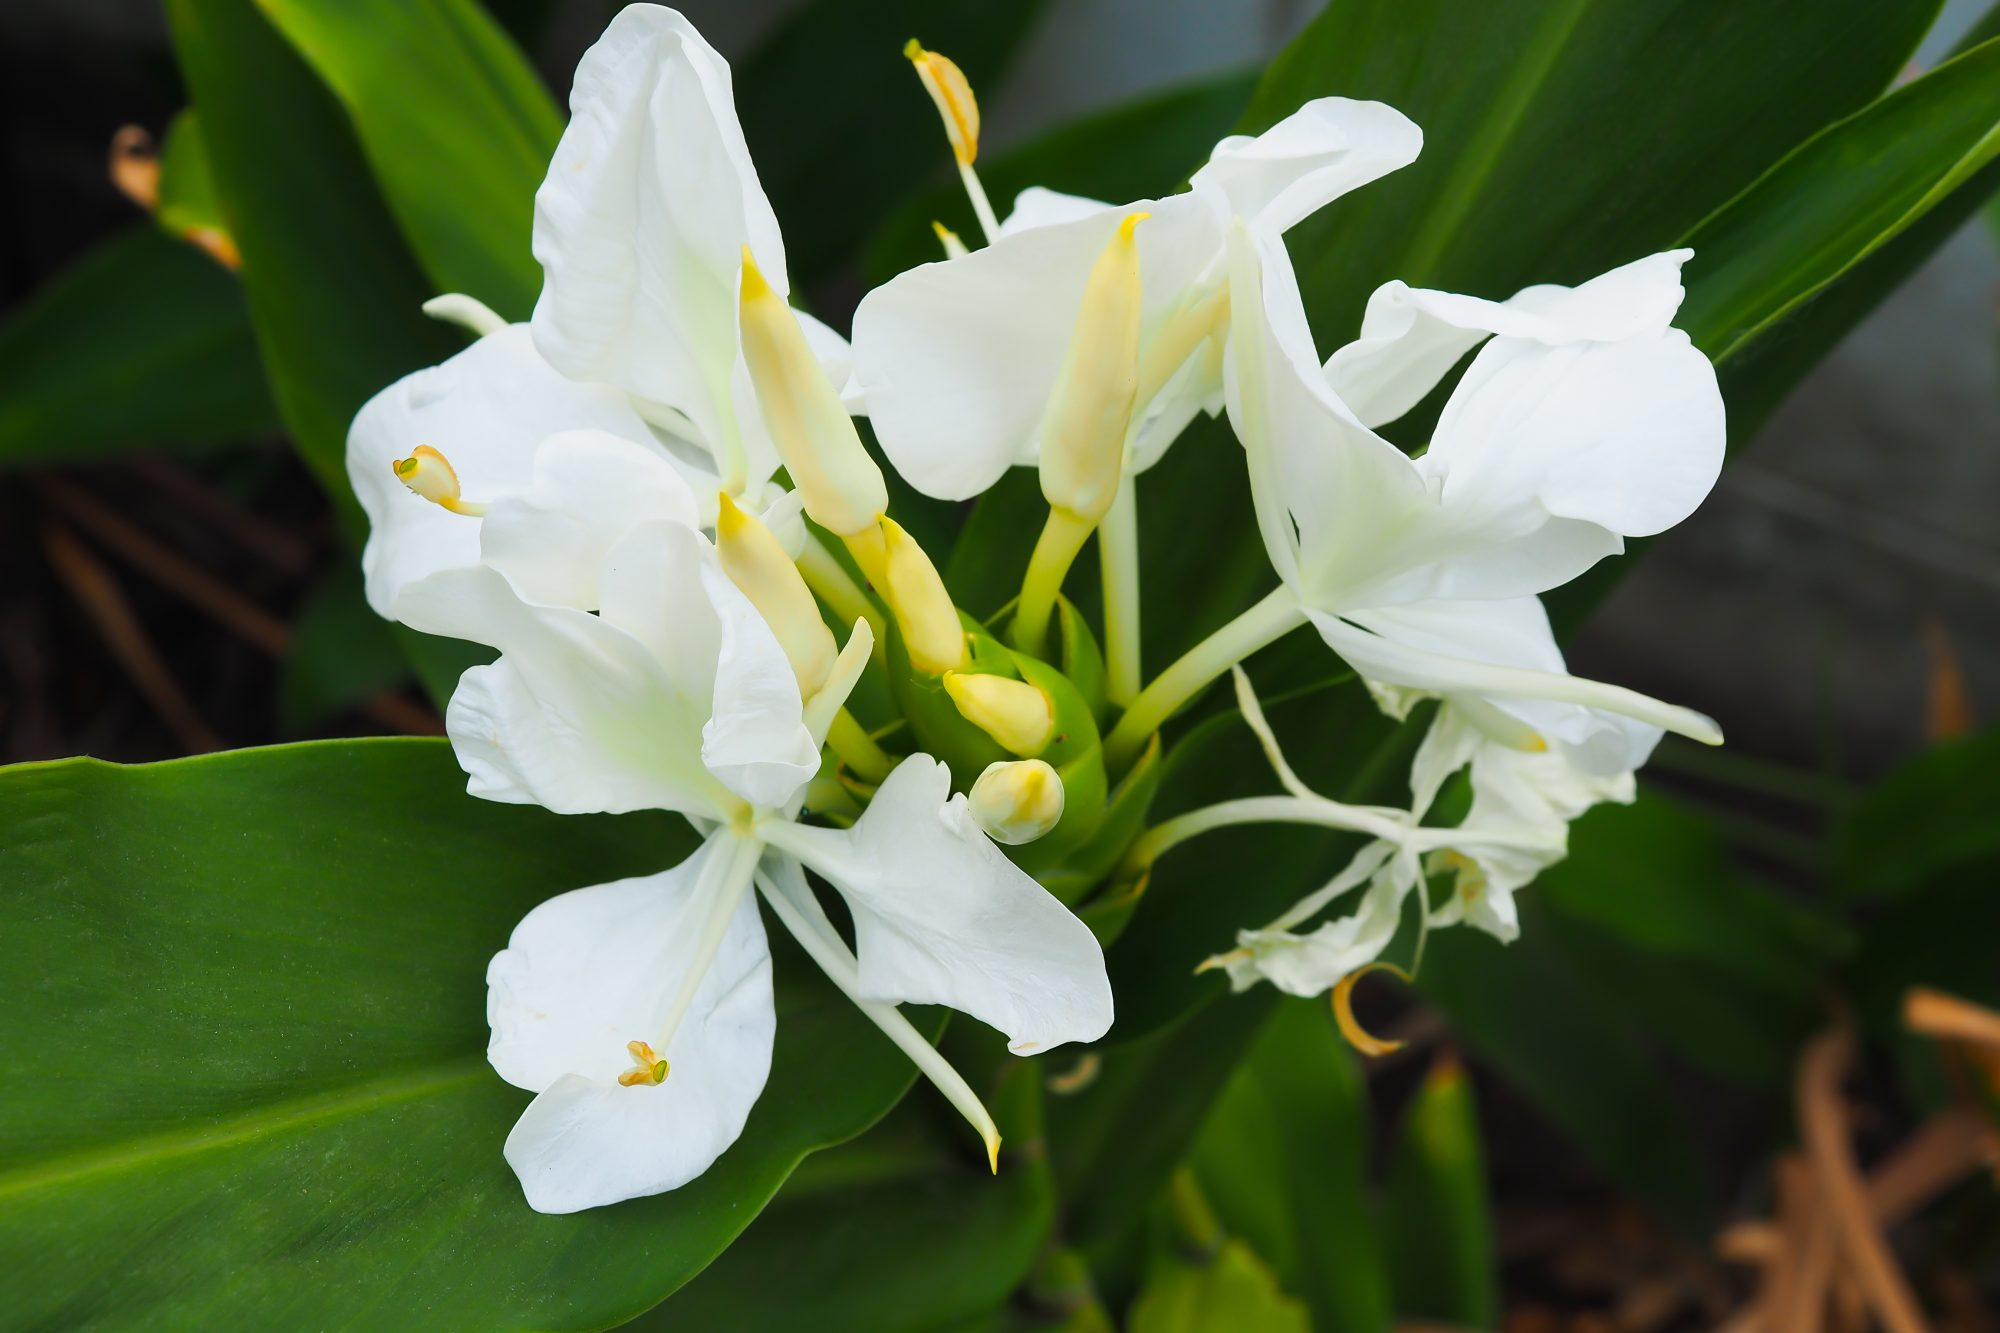 ginger lily sweetens the garden - southern living